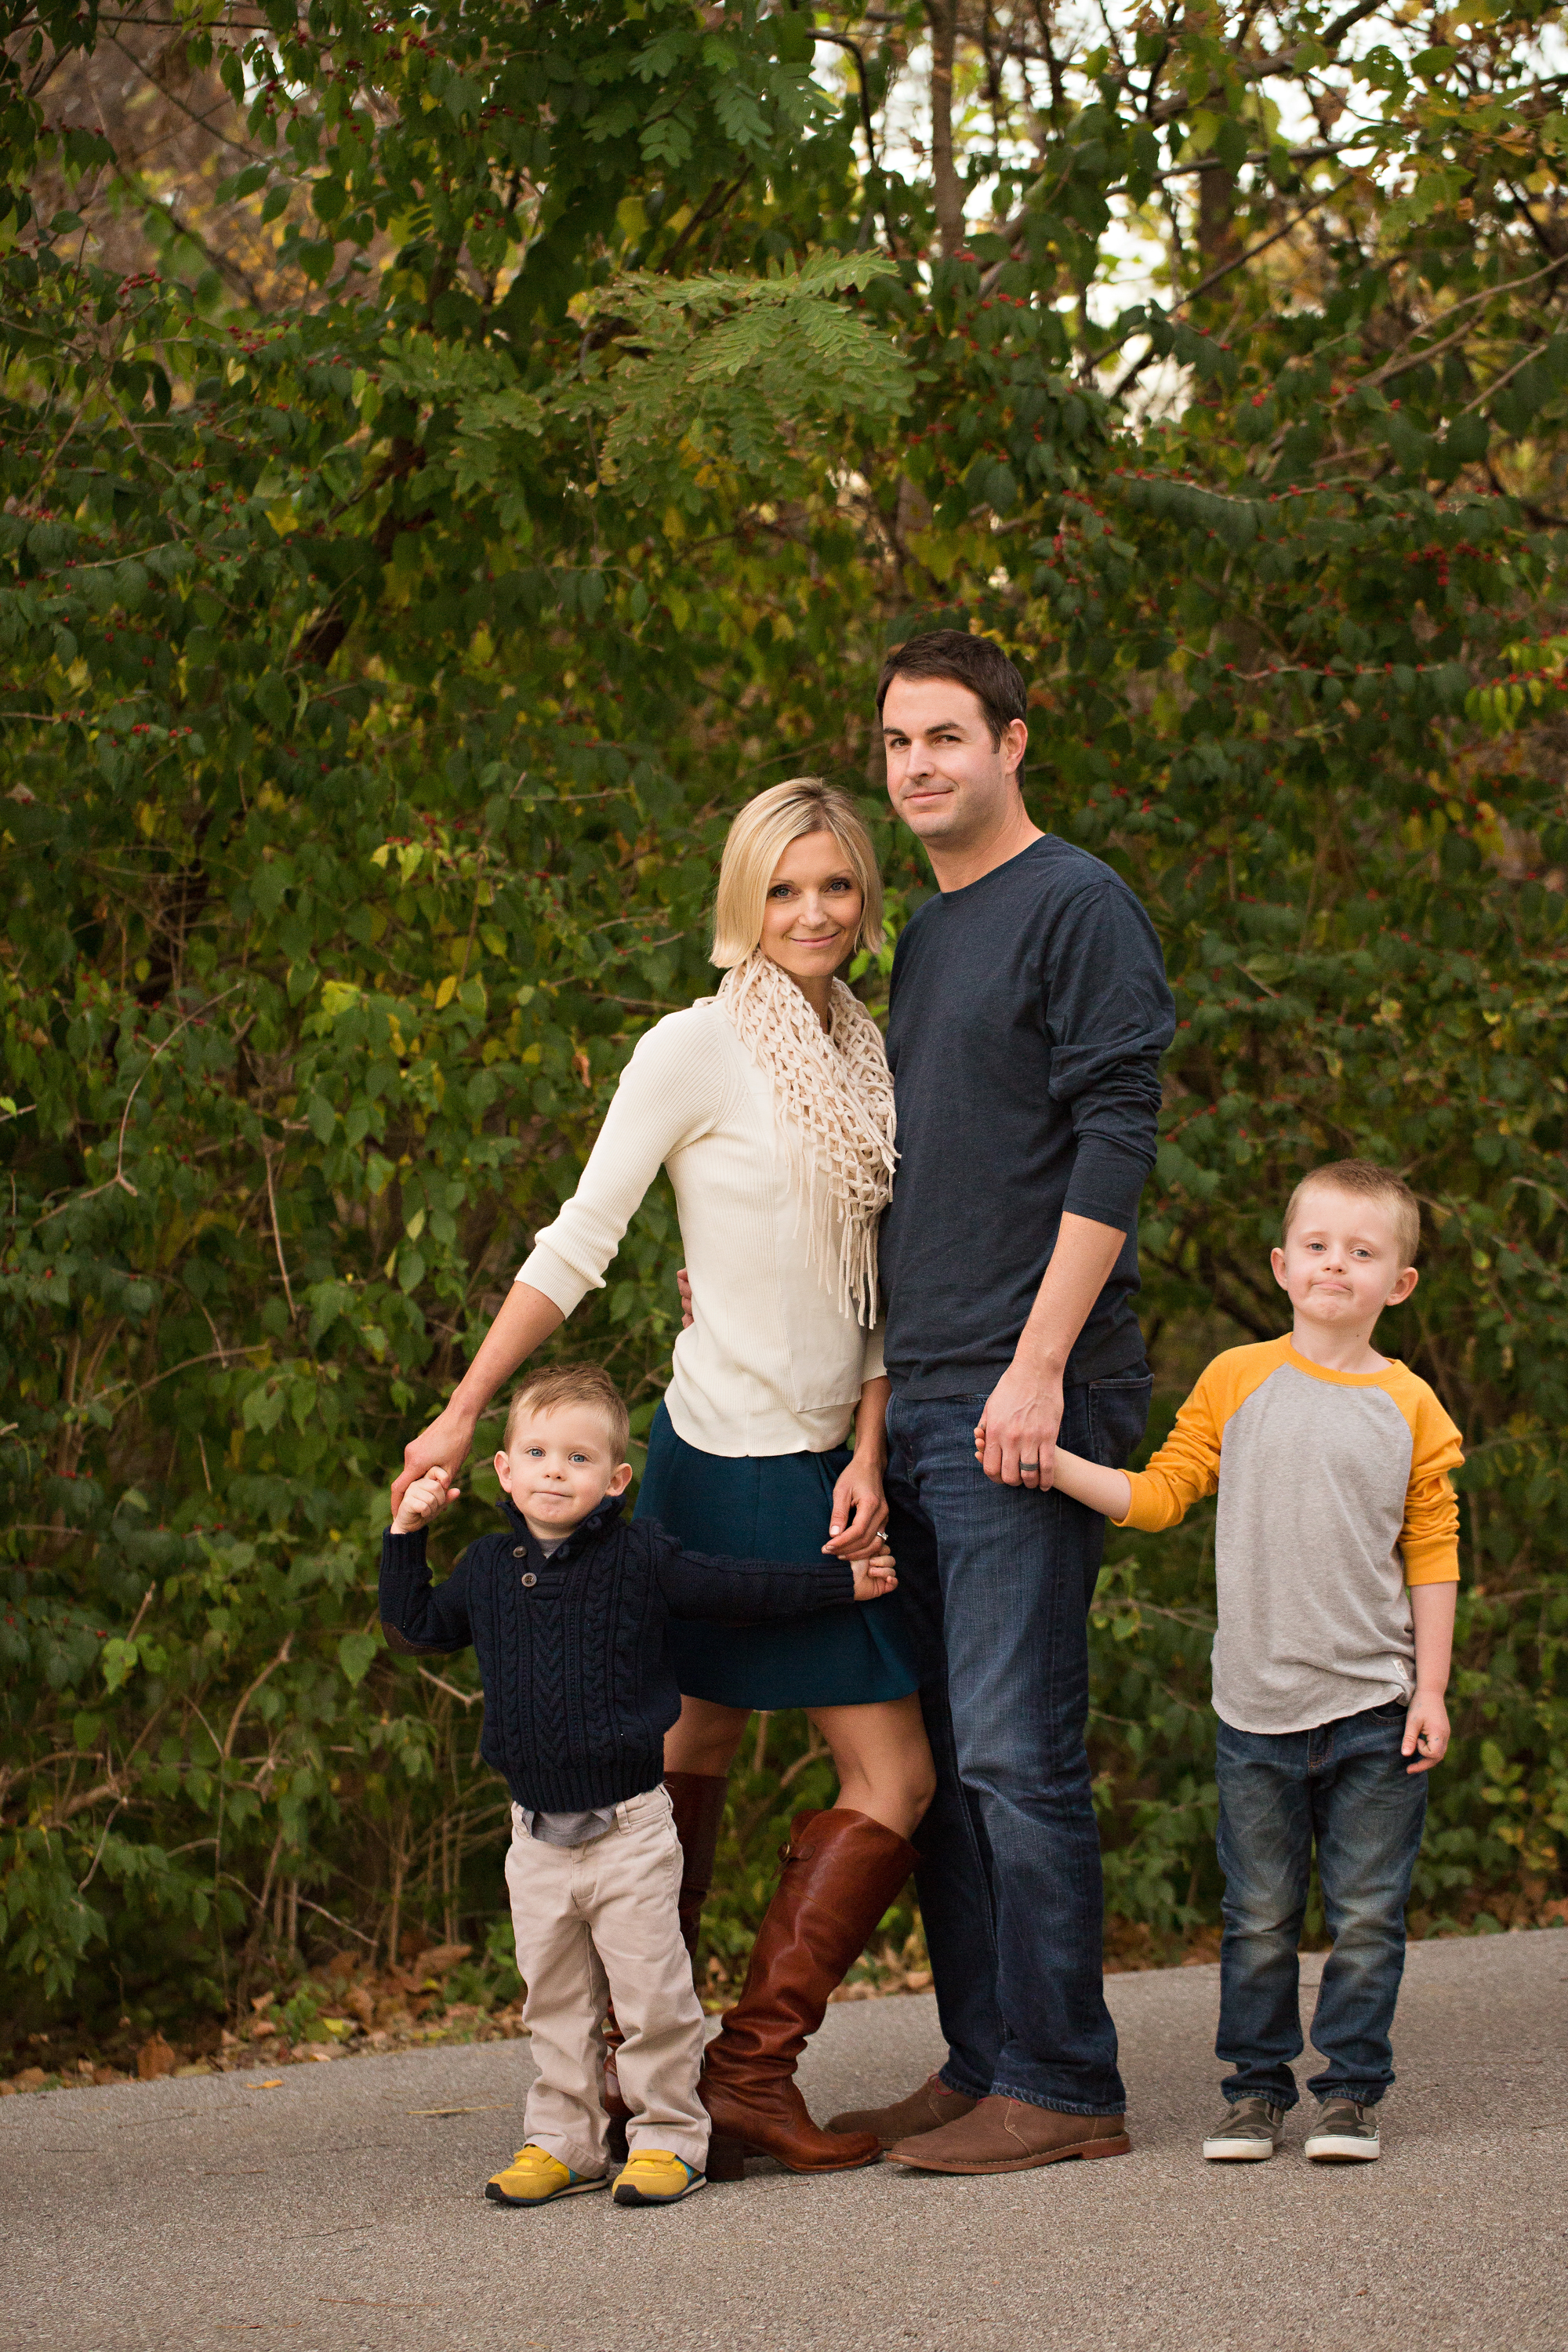 St-Louis-Family-Photographer_Ashley-Becker_0047.jpg